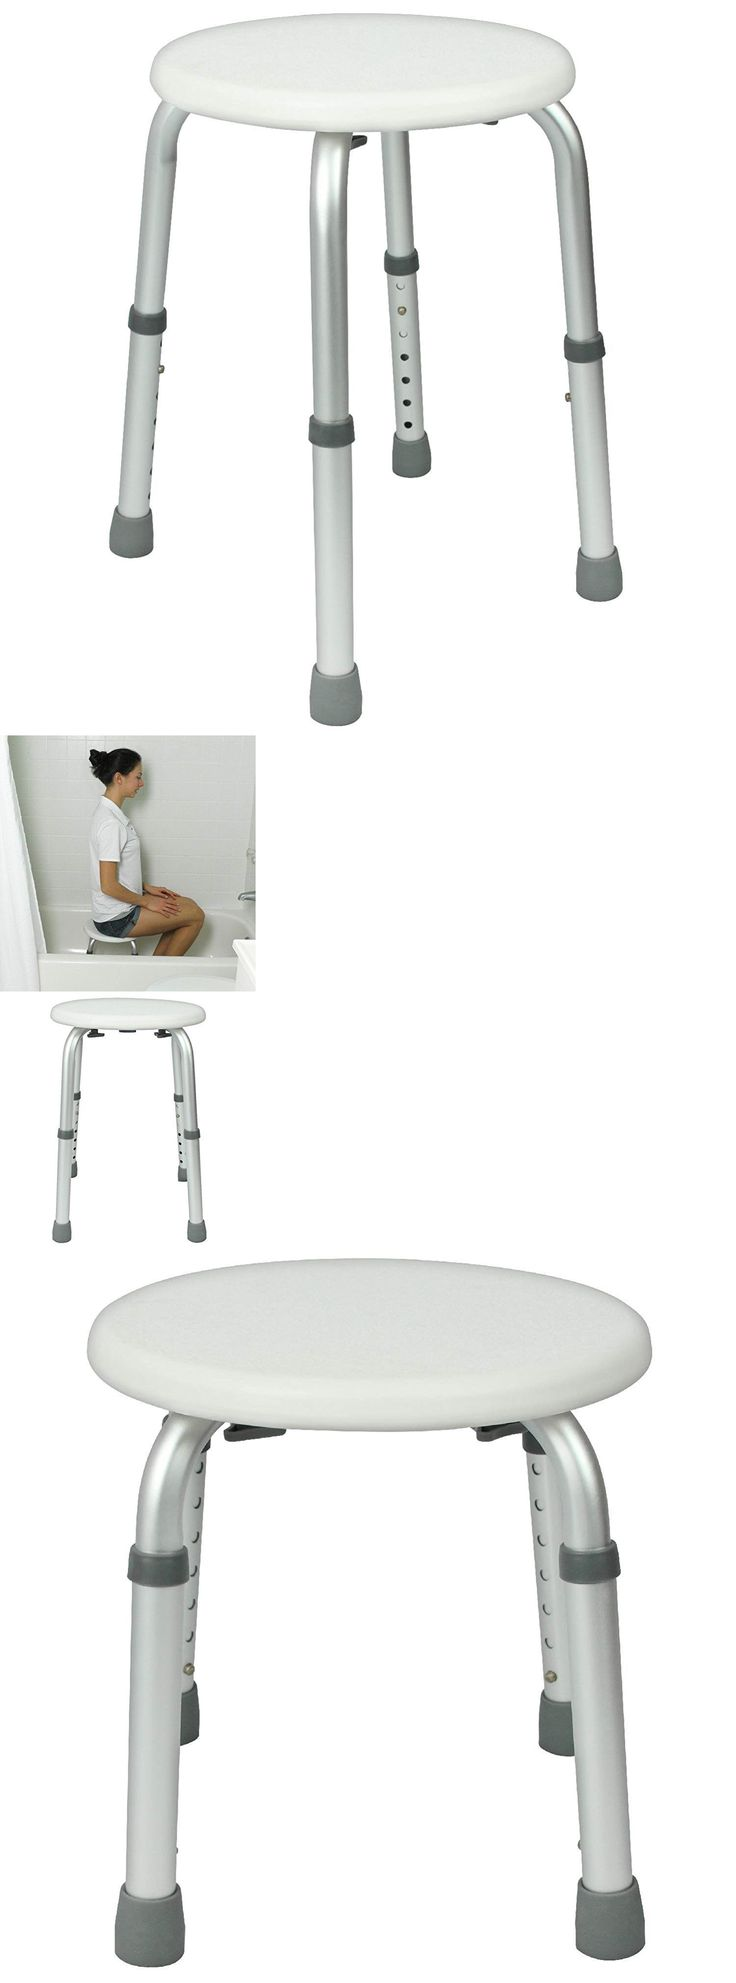 best 25 shower stools ideas on pinterest shower seat shower shower and bath seats vive shower stool adjustable bath tub safety seat heavy